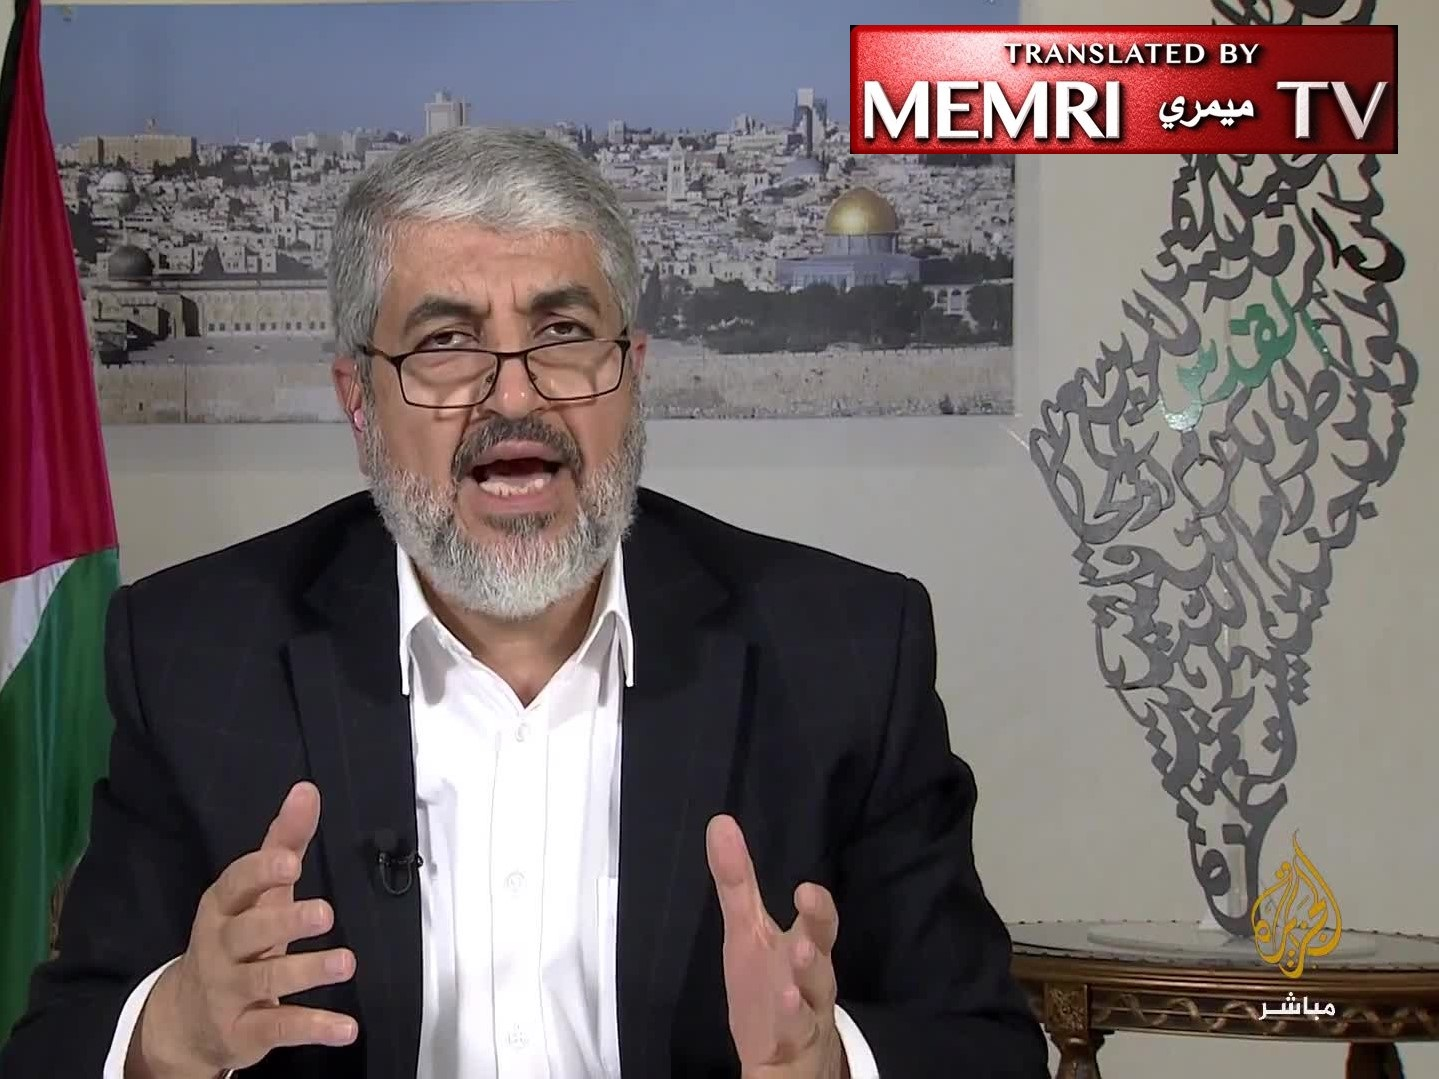 Former Hamas Leader Khaled Mashal Calls for West Bank